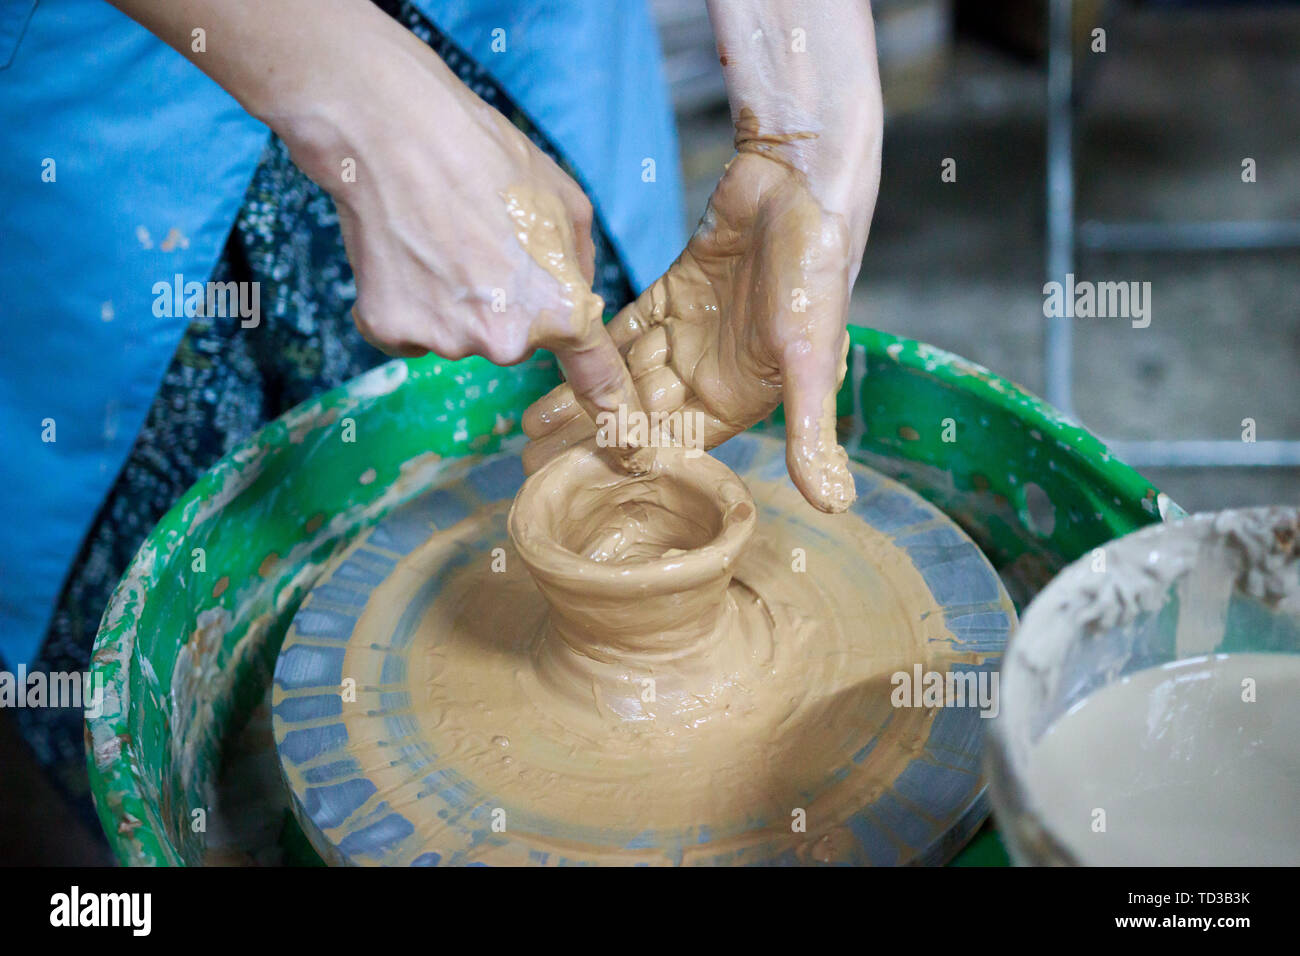 A novice student in the first lesson in pottery tries to make a product from clay on a potter's wheel. reportage. Incorrect hand setting. Stock Photo